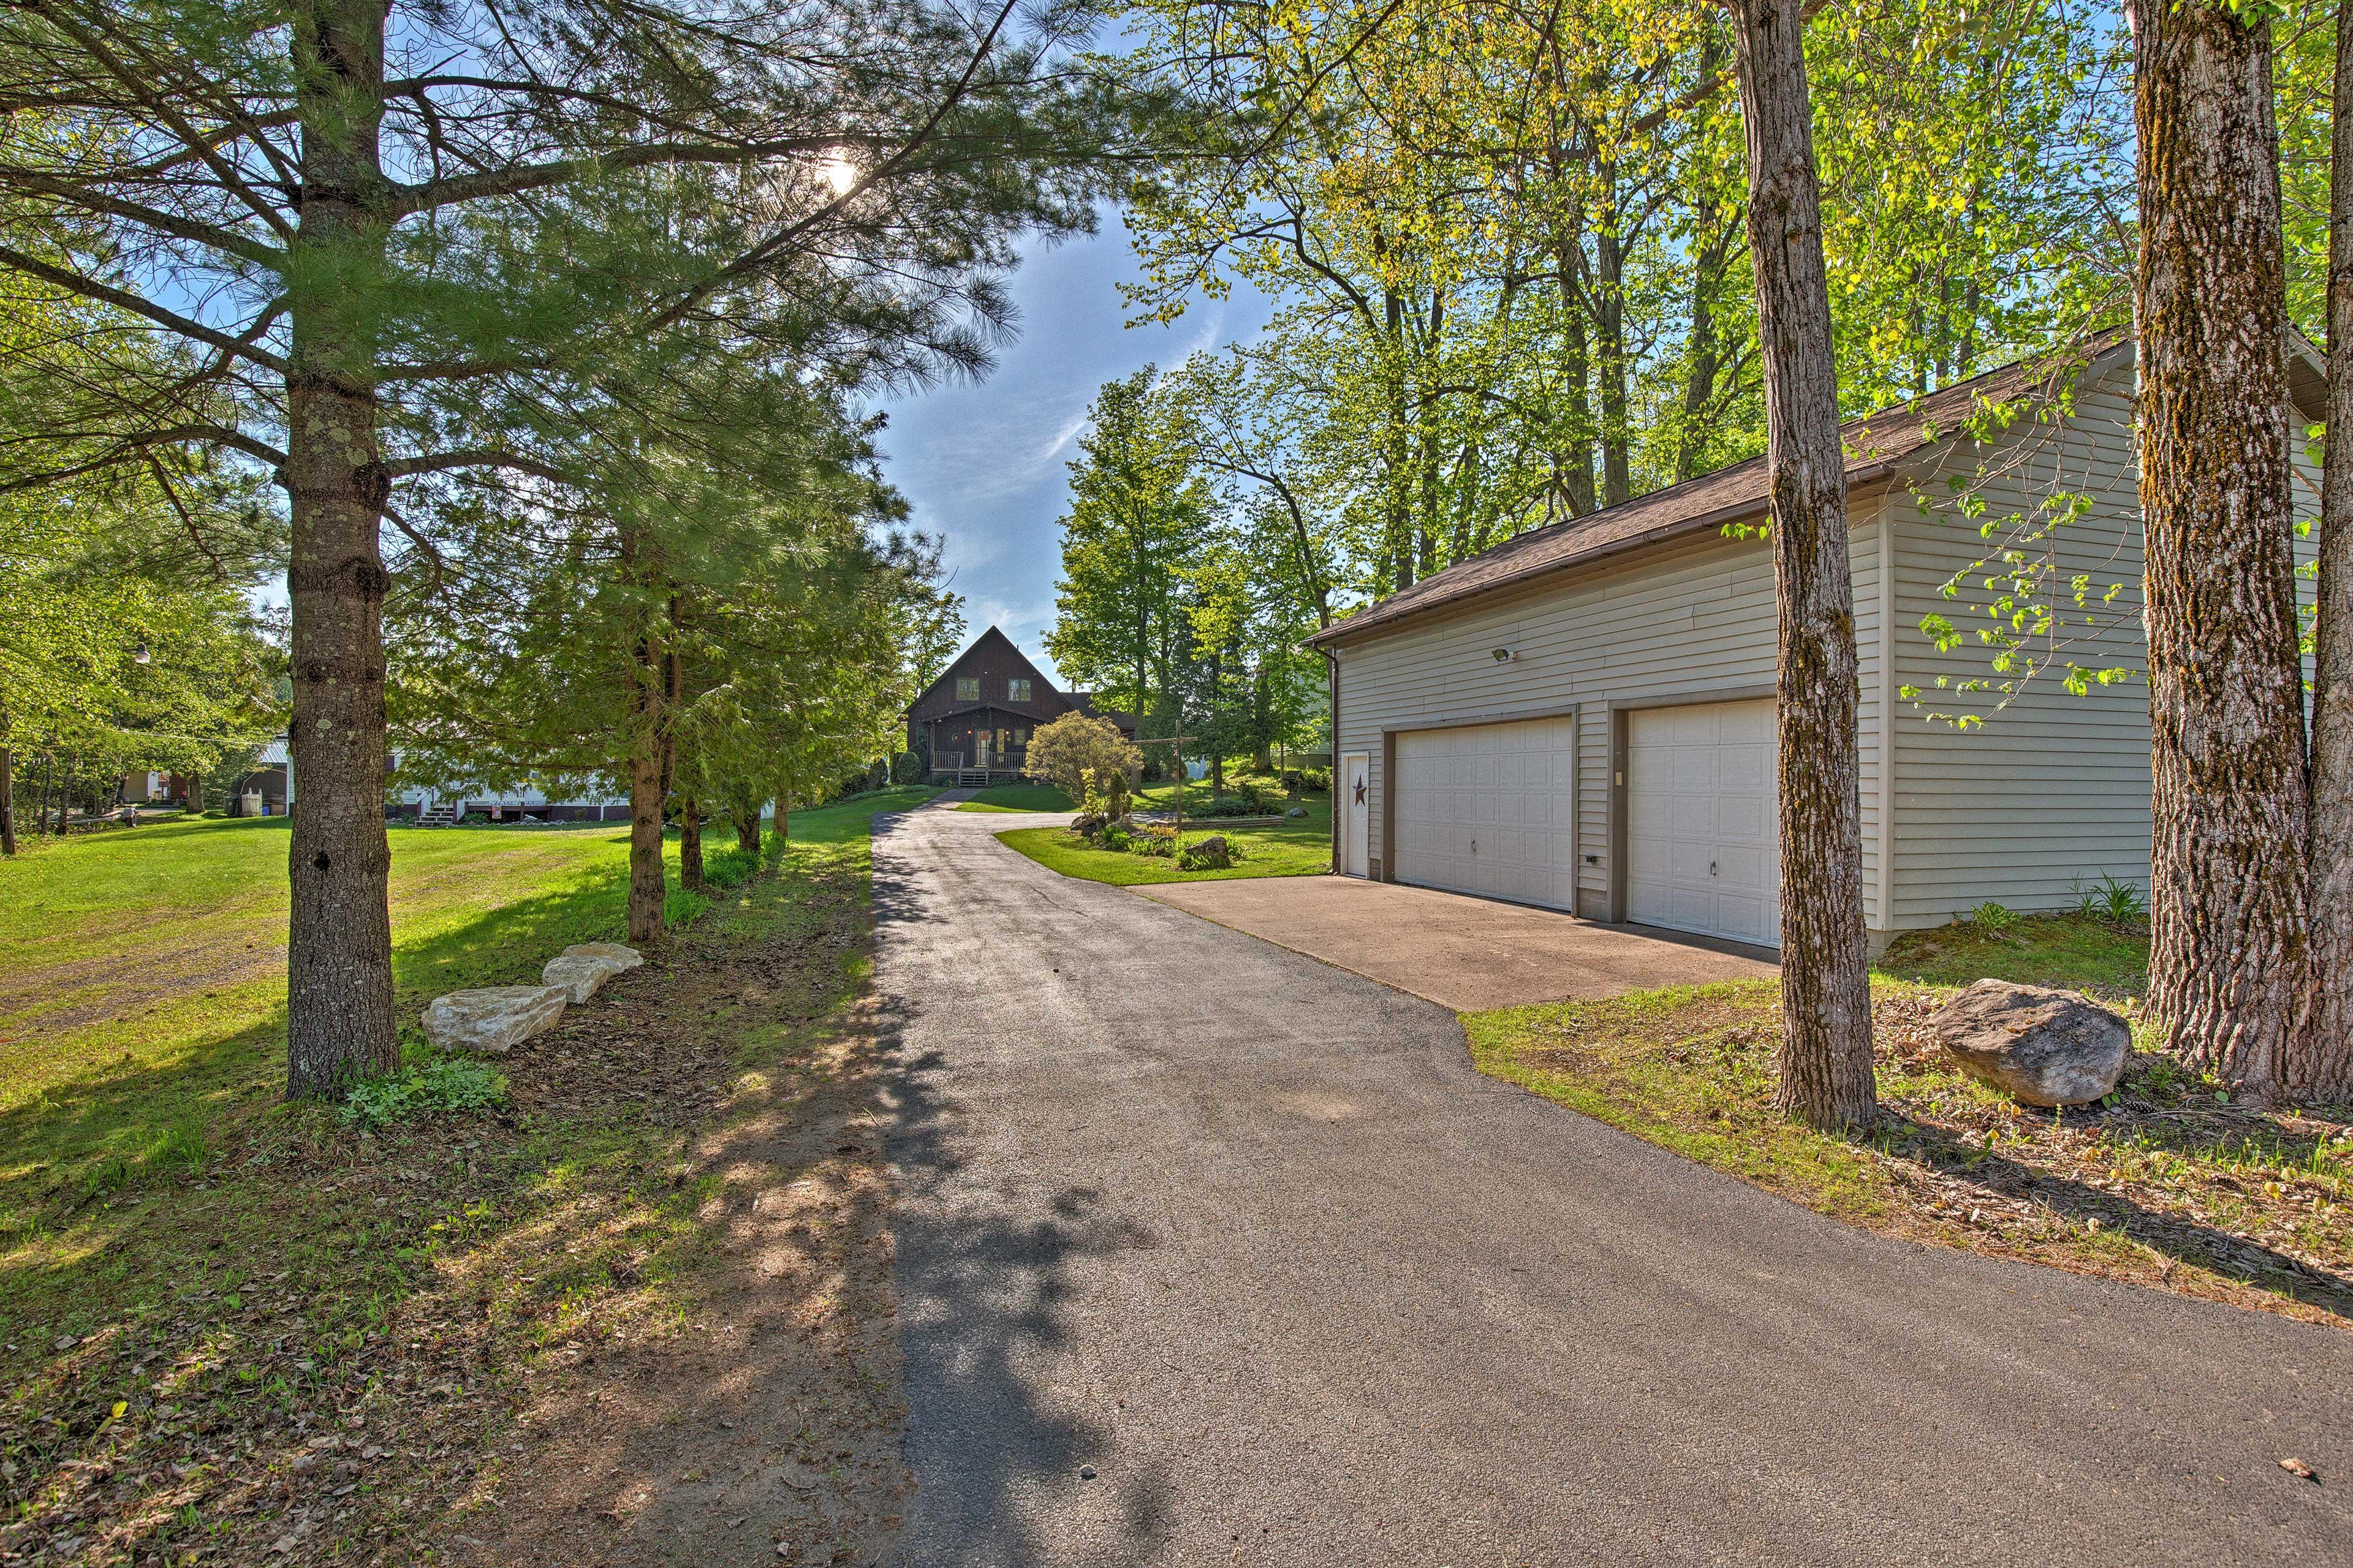 Follow the tree-lined driveway to your new home-away-from-home.